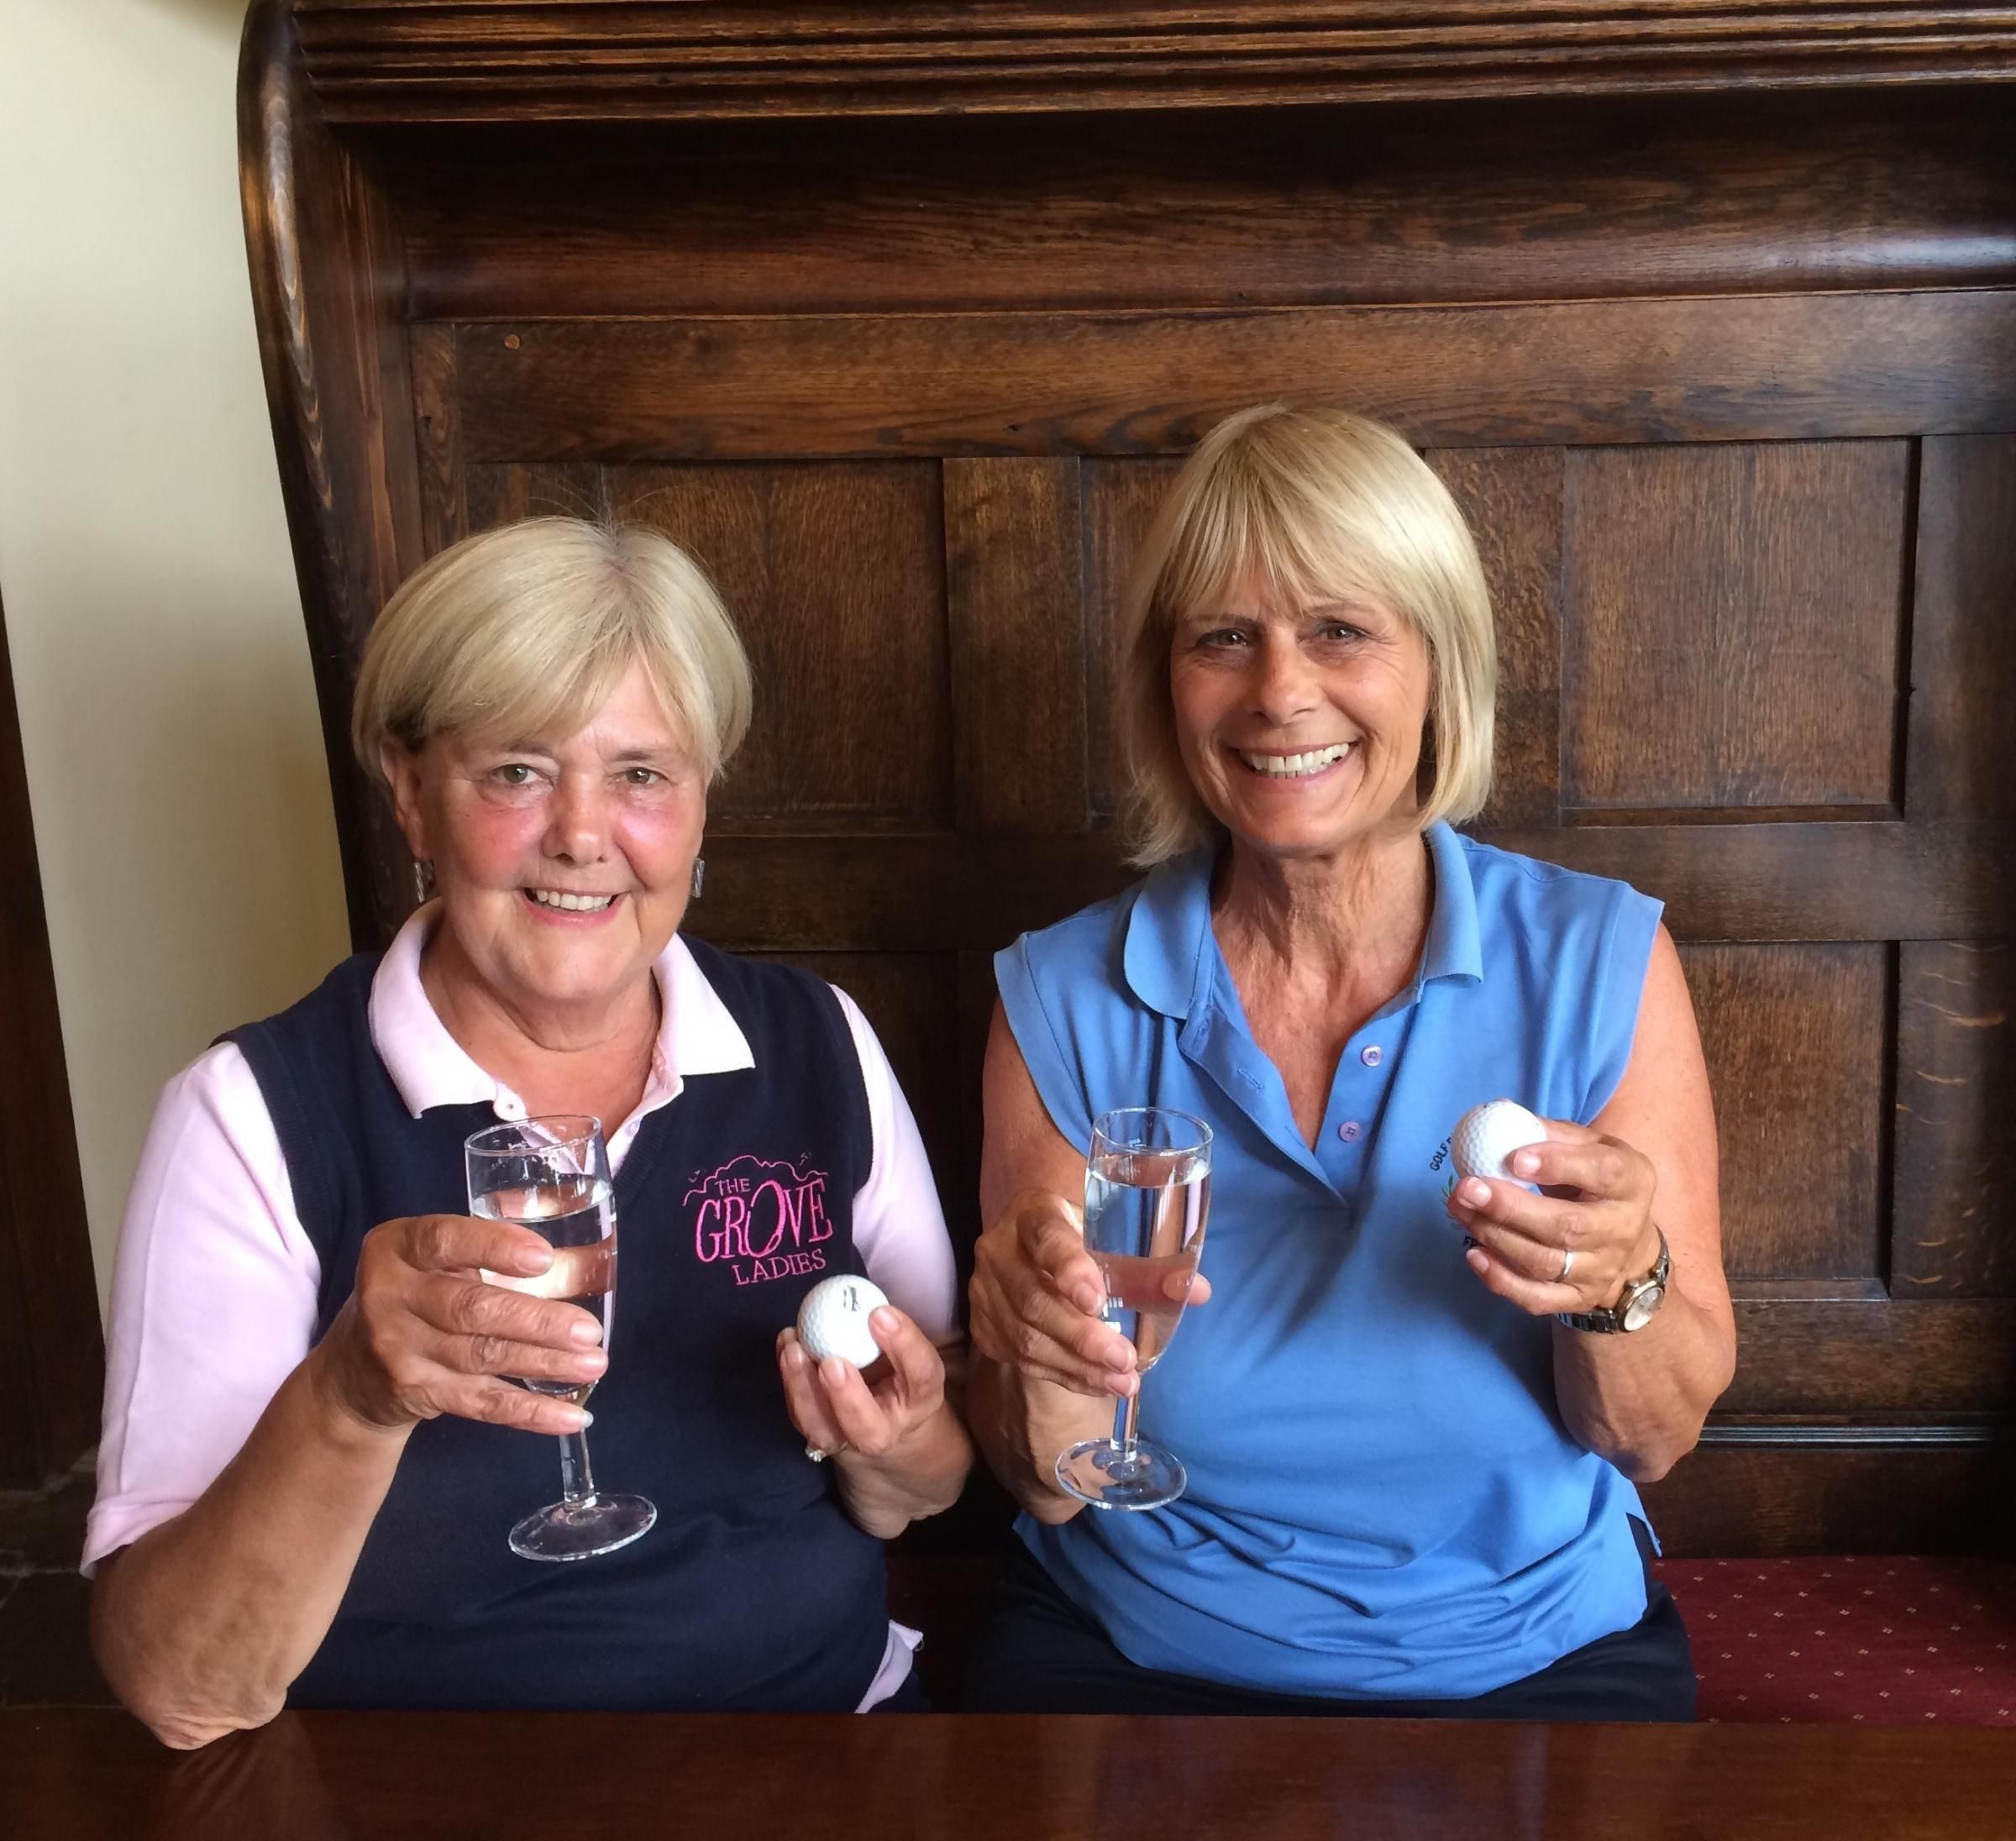 Jan Mussell and Jan Jones who both his holes in one at The Grove in Leominster